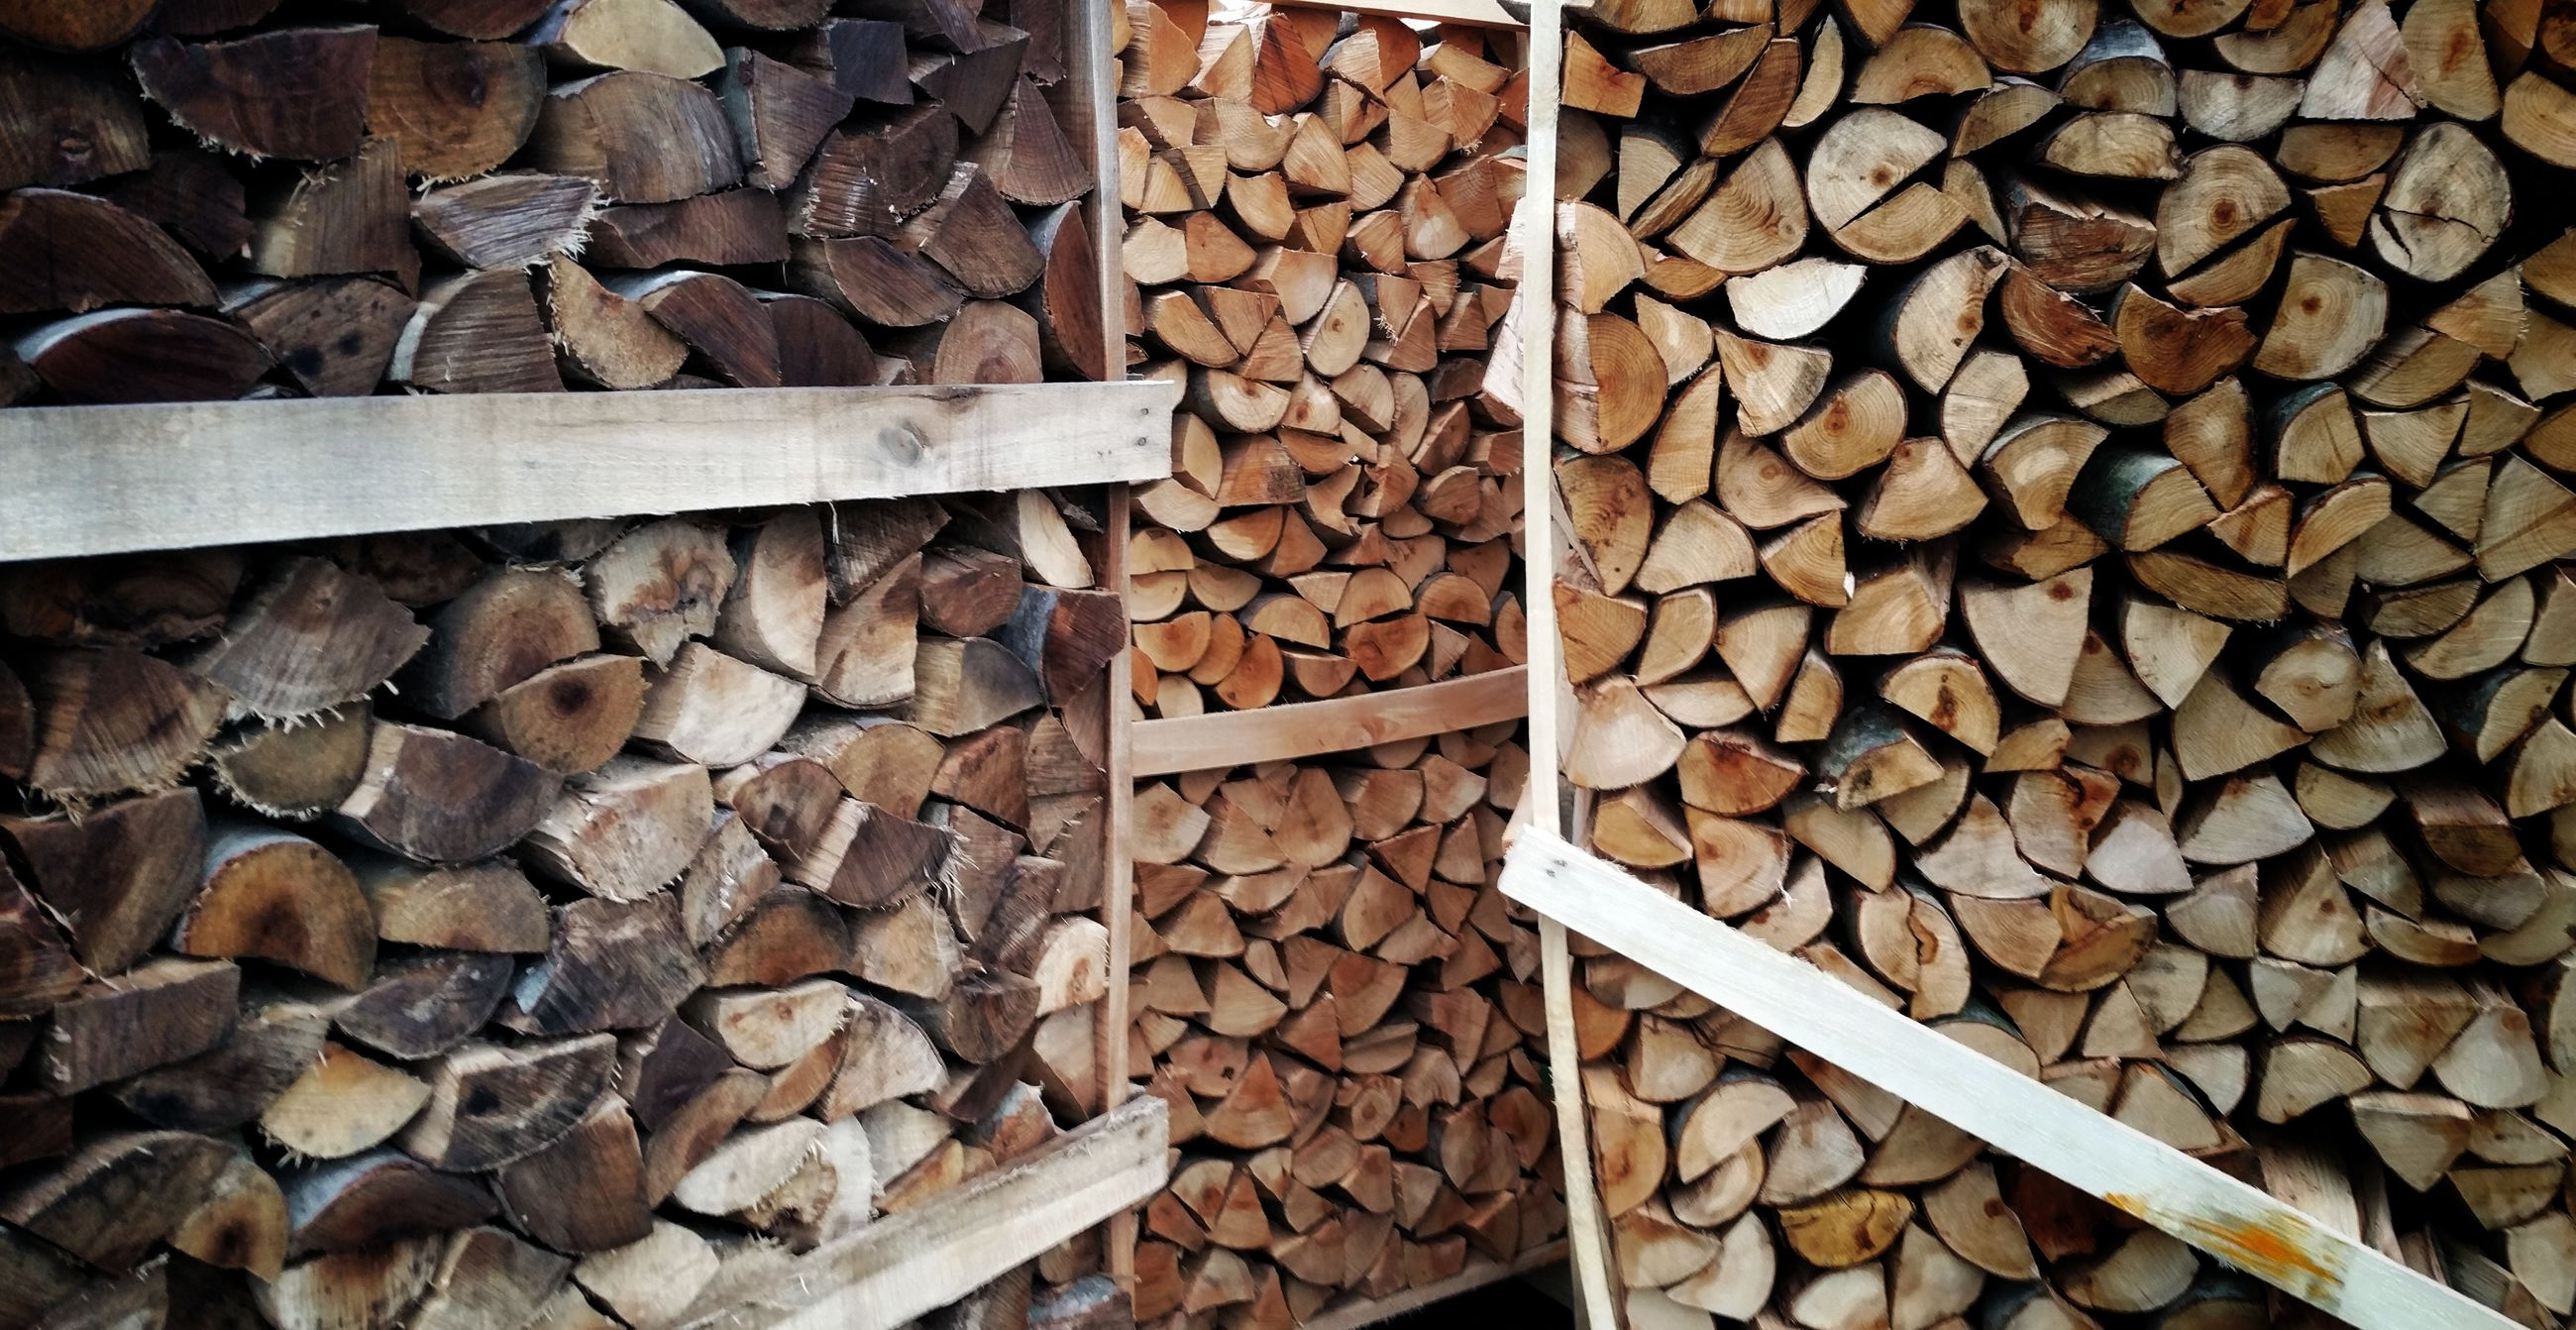 wood - material, firewood, large group of objects, log, stack, backgrounds, full frame, lumber industry, woodpile, deforestation, abundance, timber, wooden, forestry industry, textured, close-up, heap, repetition, brown, fossil fuel, day, outdoors, chopped, arrangement, no people, order, collection